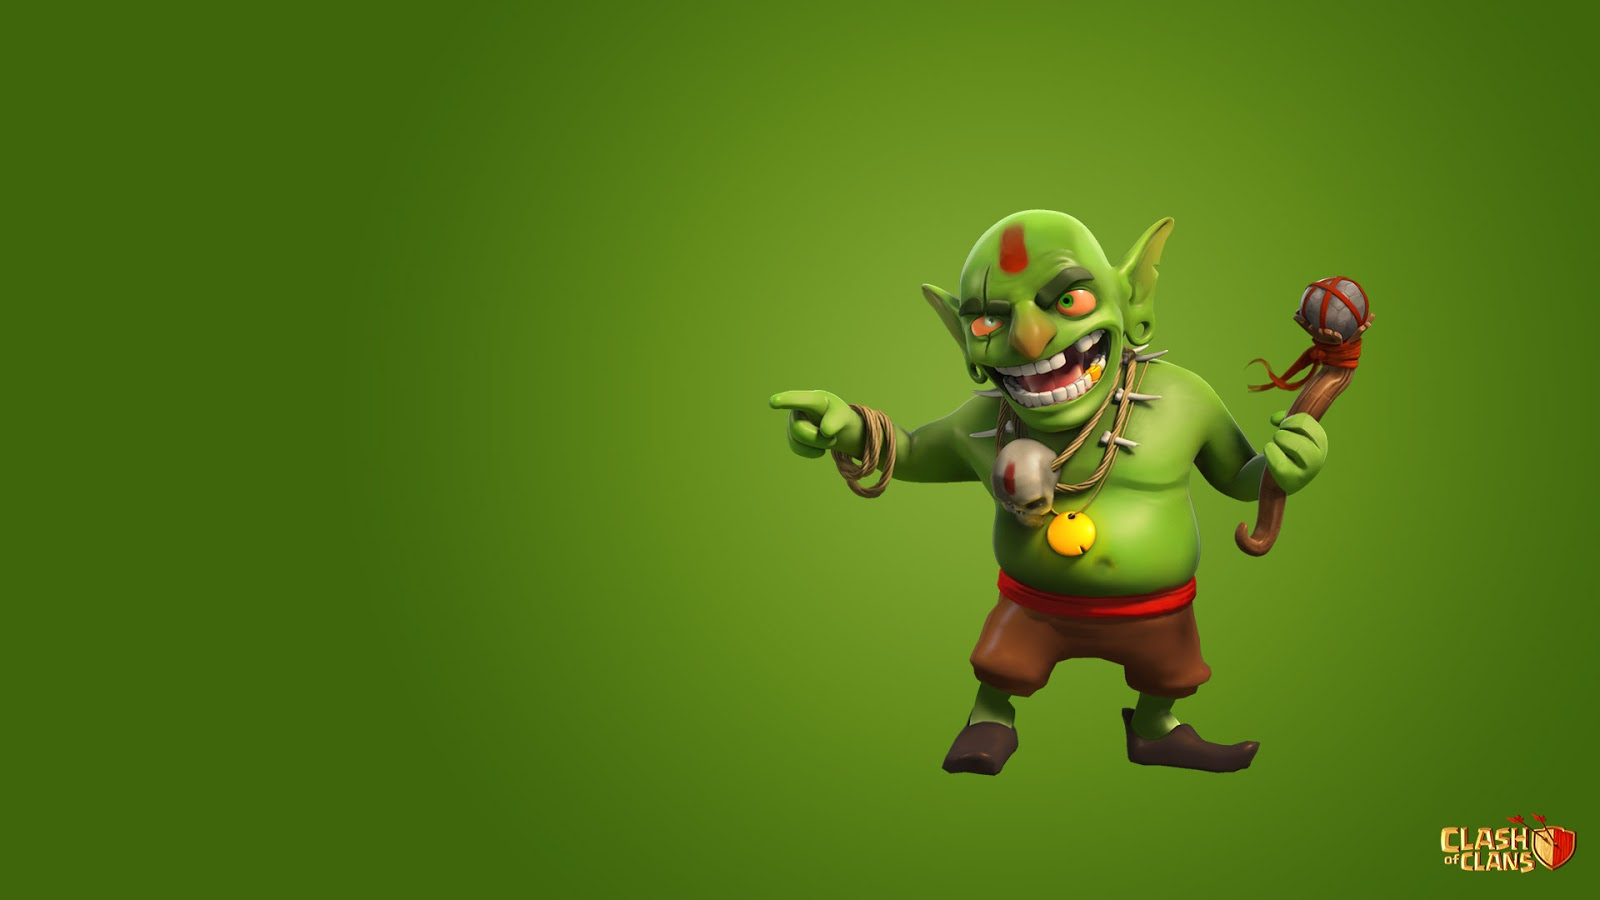 50 HD Clash Of Clans Wallpapers For Phone 2020